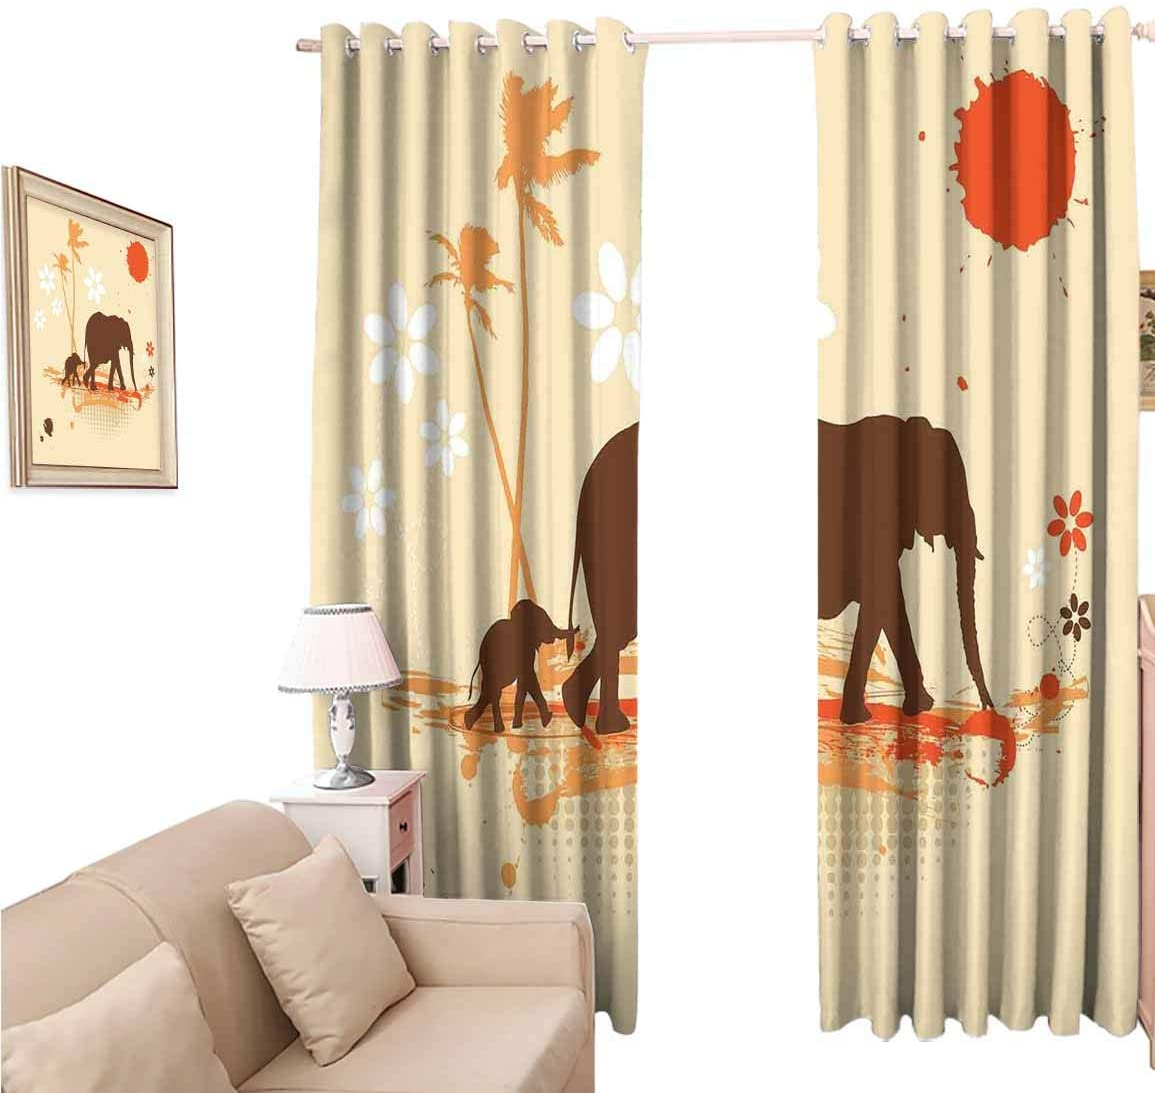 oobon Window Blackout Curtains Fabric, Elephant Mother and Baby s in Tropical Lands Desert of Safari Kids, 108 Inches Long for Nursery Room, 96x108 inch